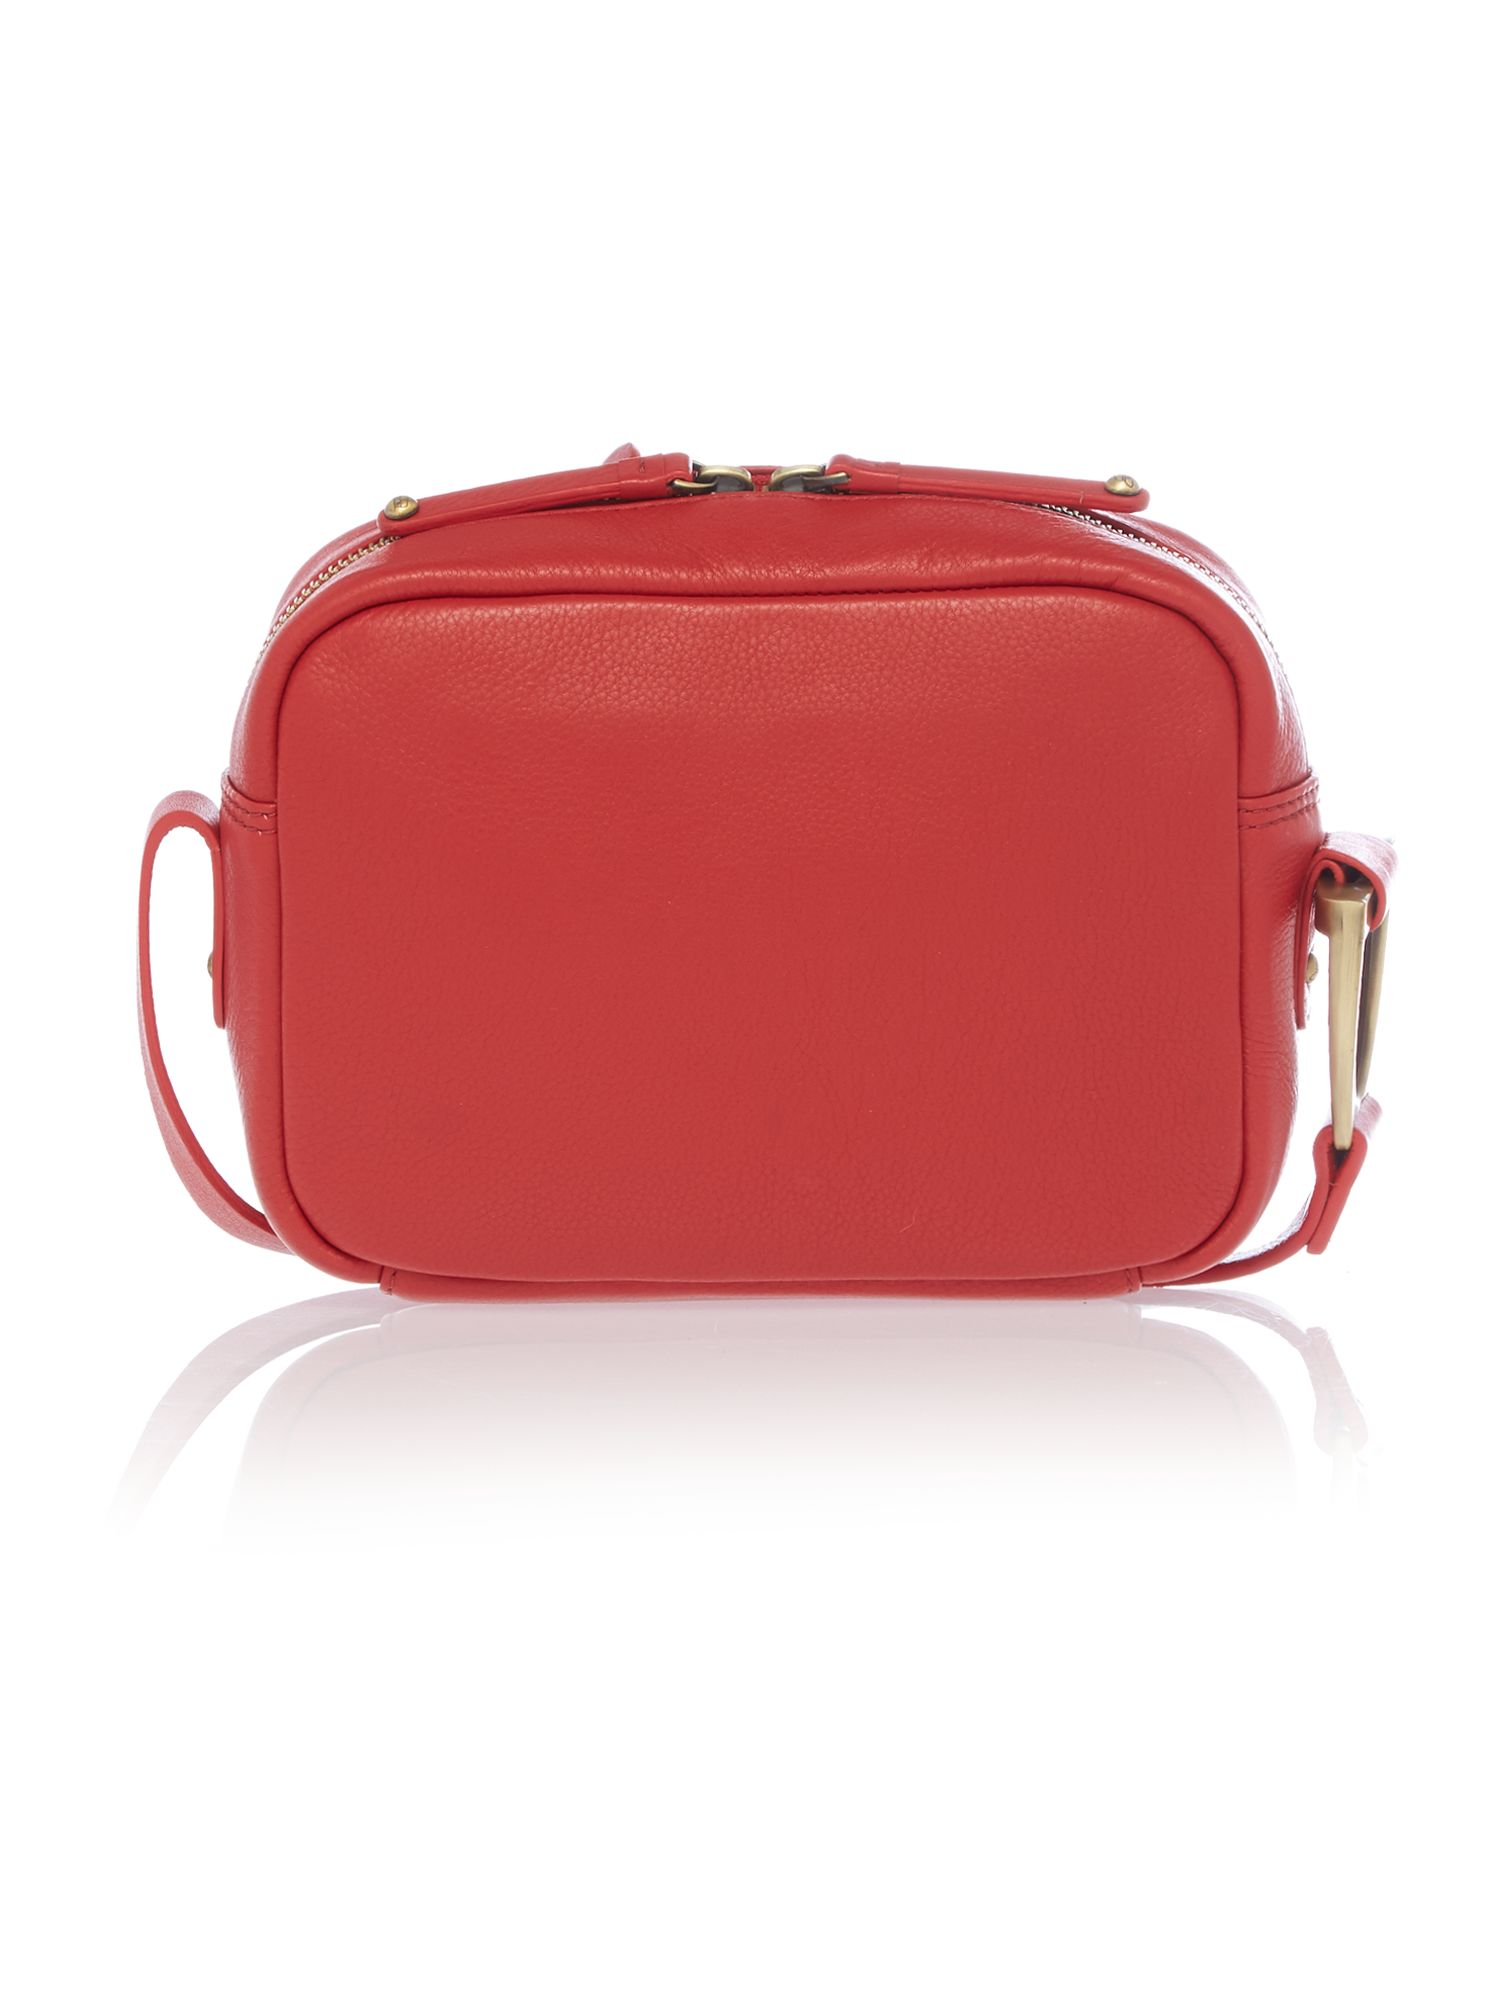 Burton Agnes red cross body bag